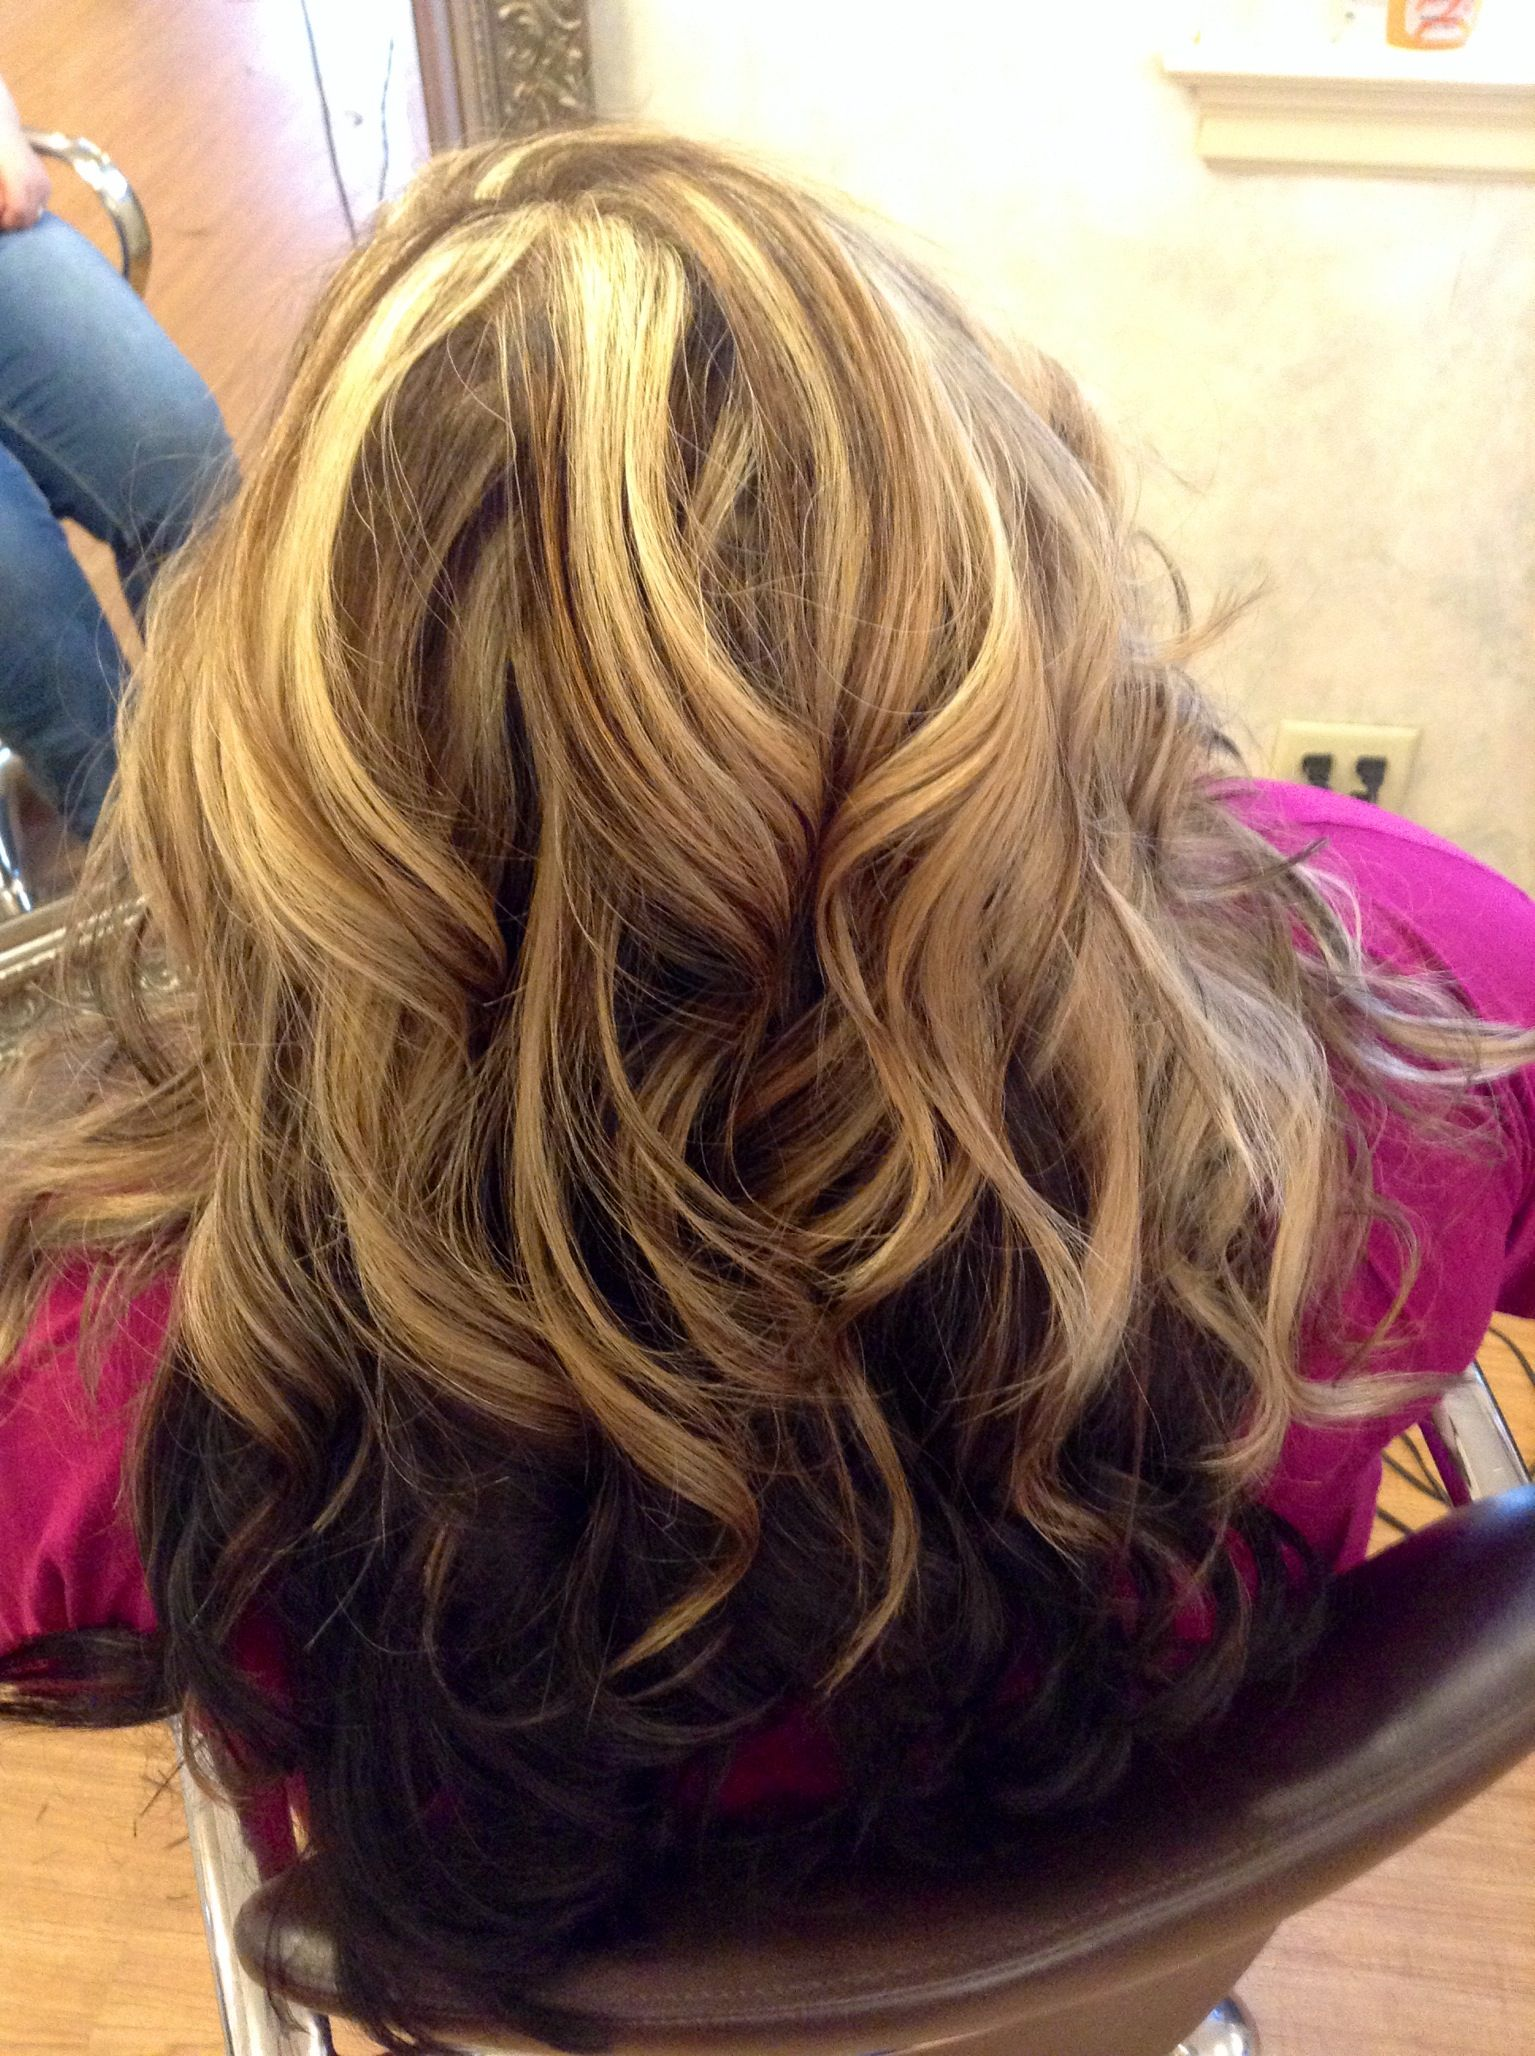 Brown Underneath With Blonde On Top Done By Melissa At Orbit